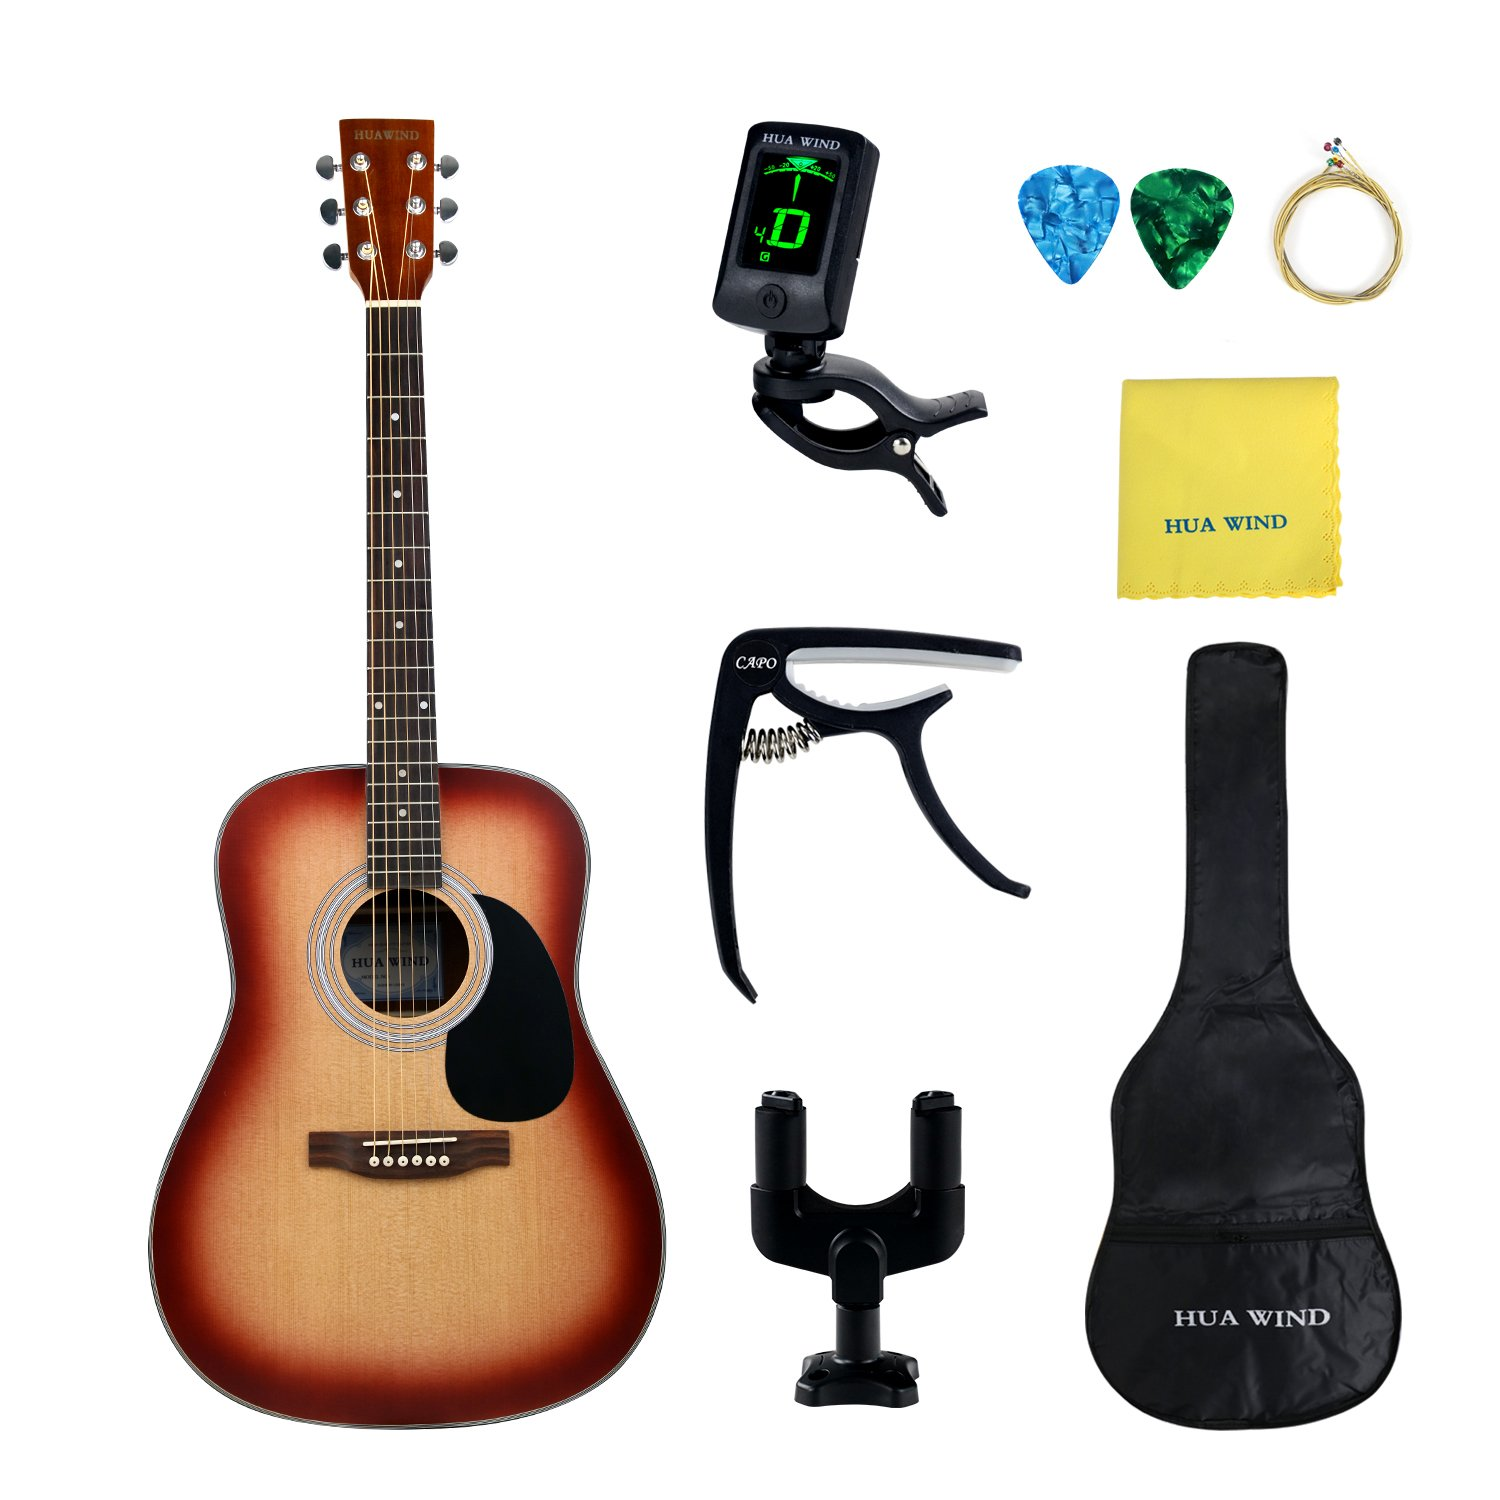 HUAWIND AcousticGuitarPackage 41inch Full Size 4/4 Spruce Top Guitar withGig Bag,Tuner,Capo,Steel String,Cleaning Cloth ,Picks,Guitar Hanger-Natural Spruce (Full Size Dreadnought)